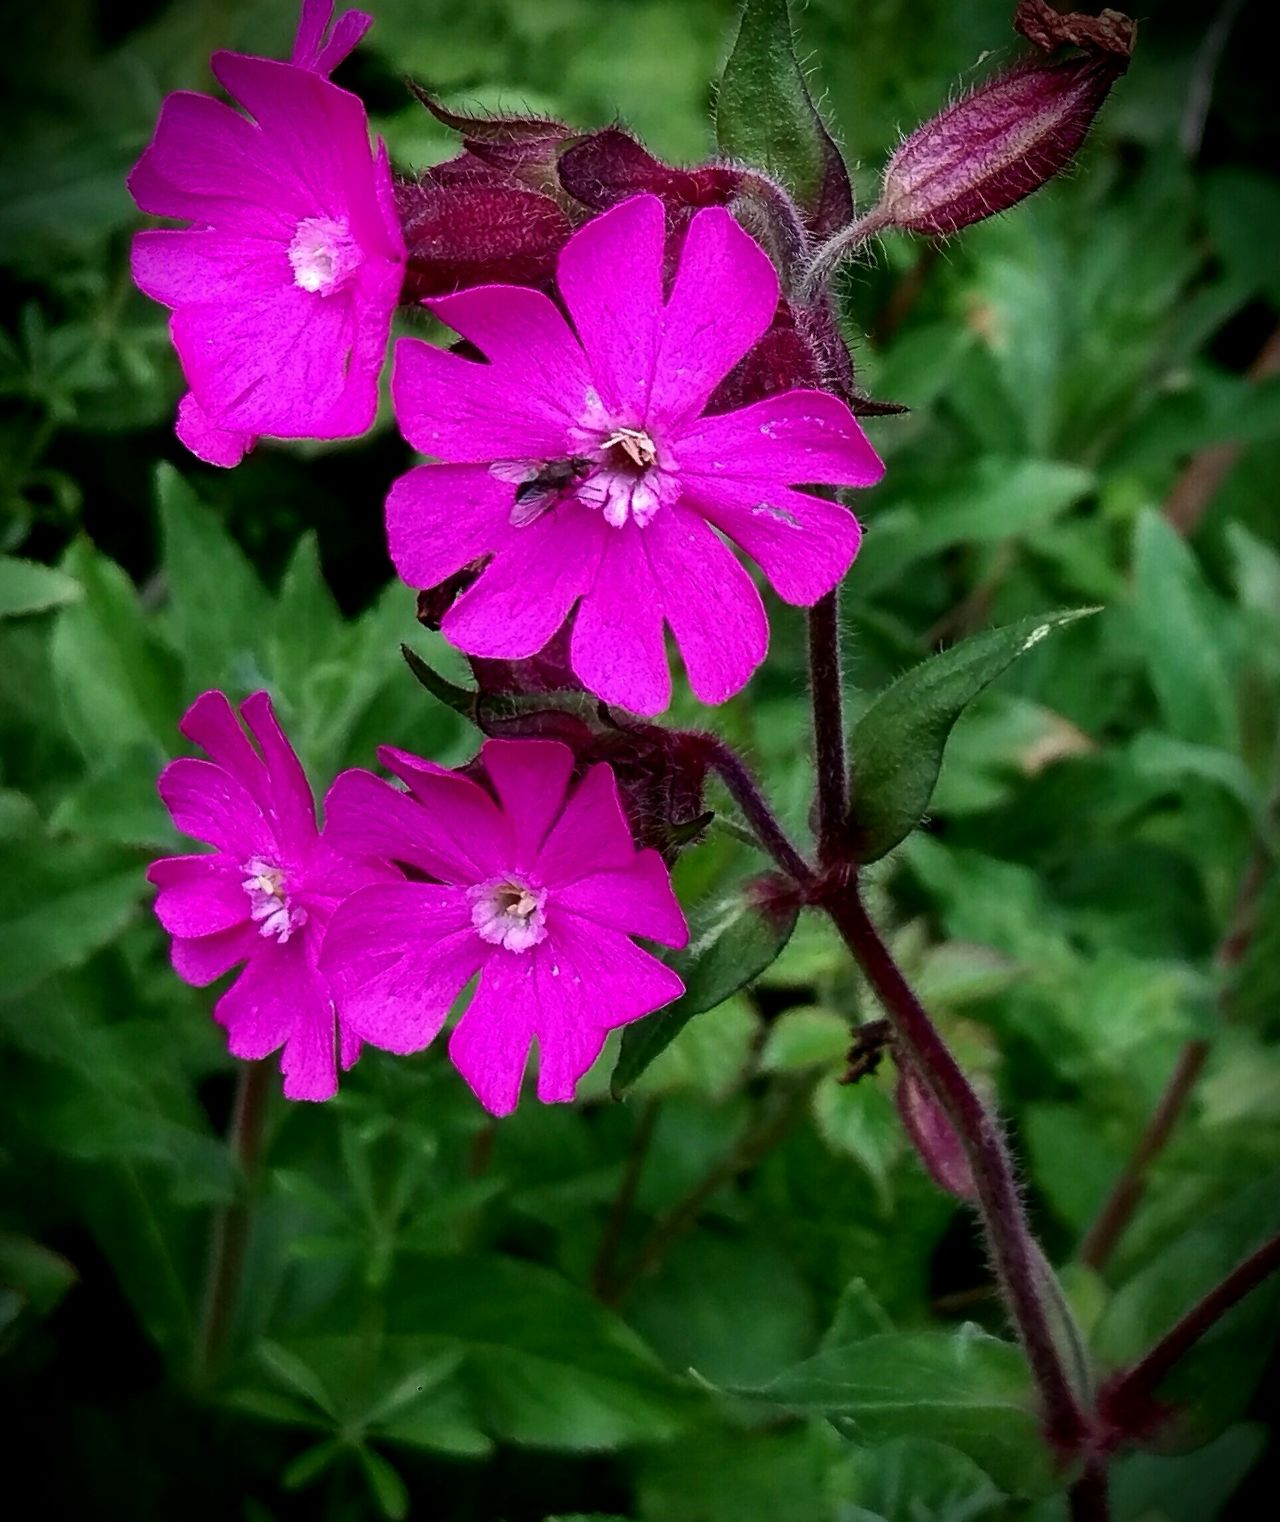 Flower Beauty In Nature Fragility Nature Petal Pink Color Plant No People Focus On Foreground Flower Head Outdoors Day Growth Freshness Close-up